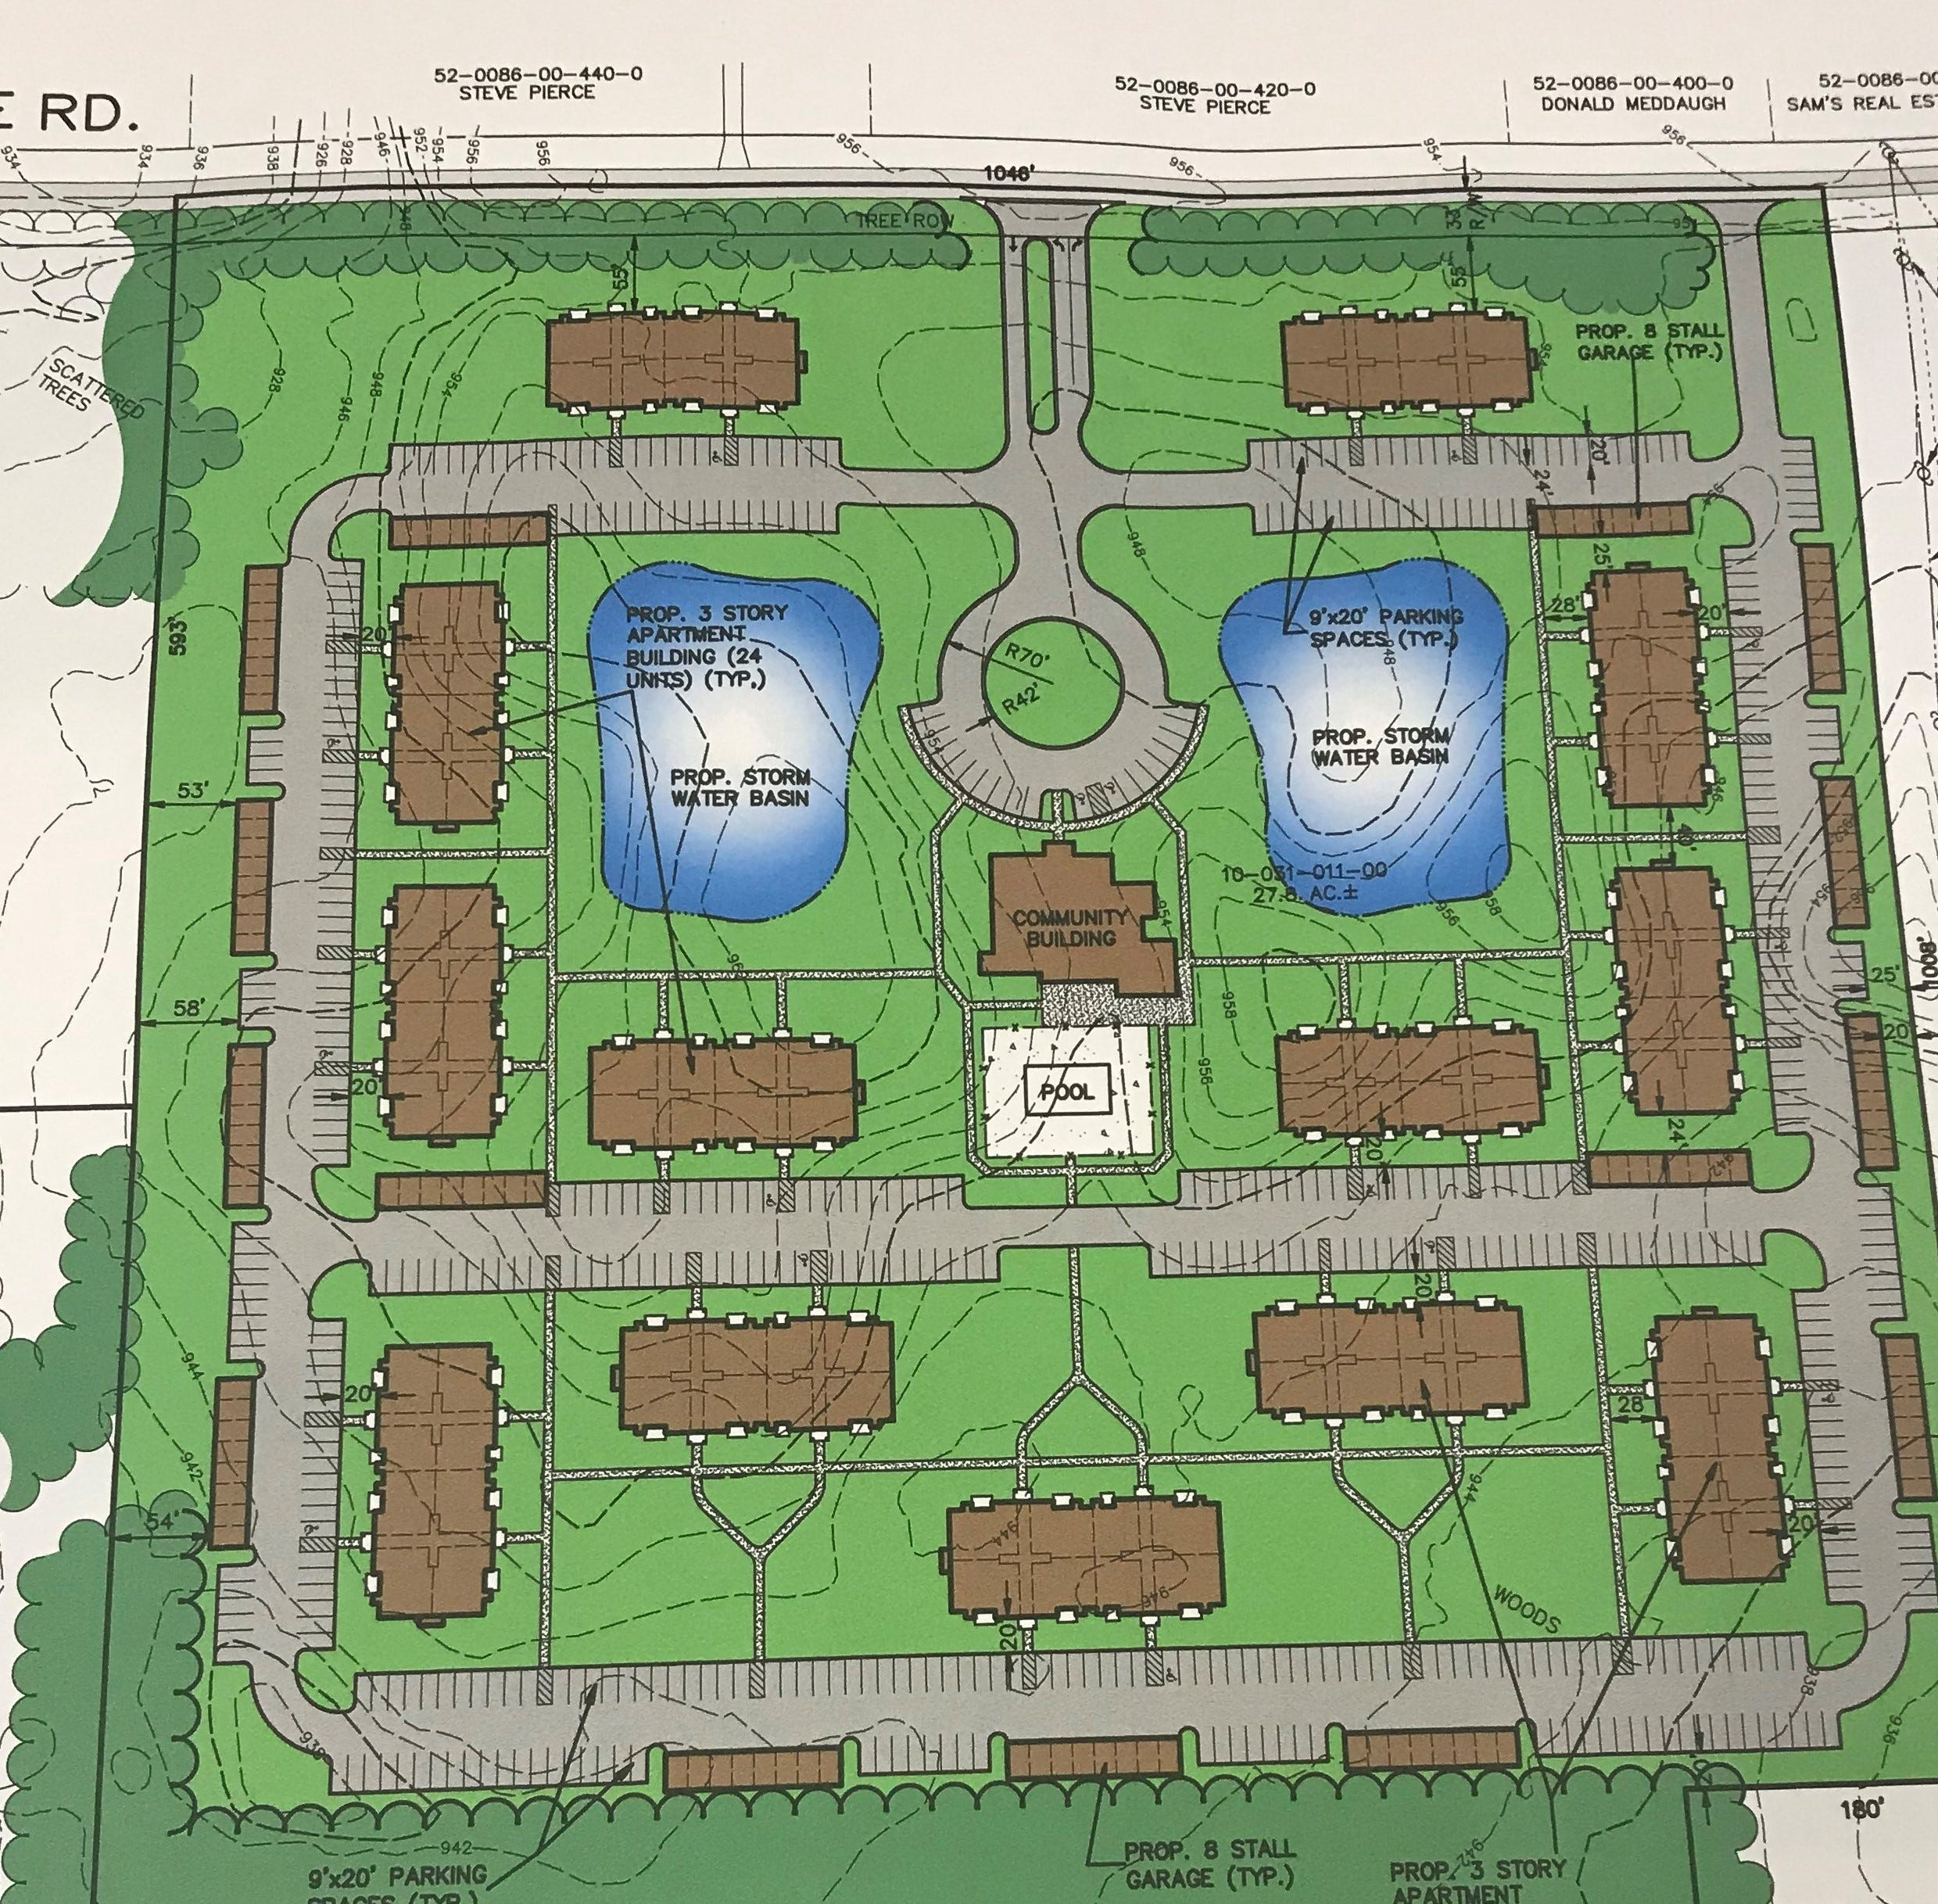 Ohio developer to build 300 'luxury' apartments in Emmett Township